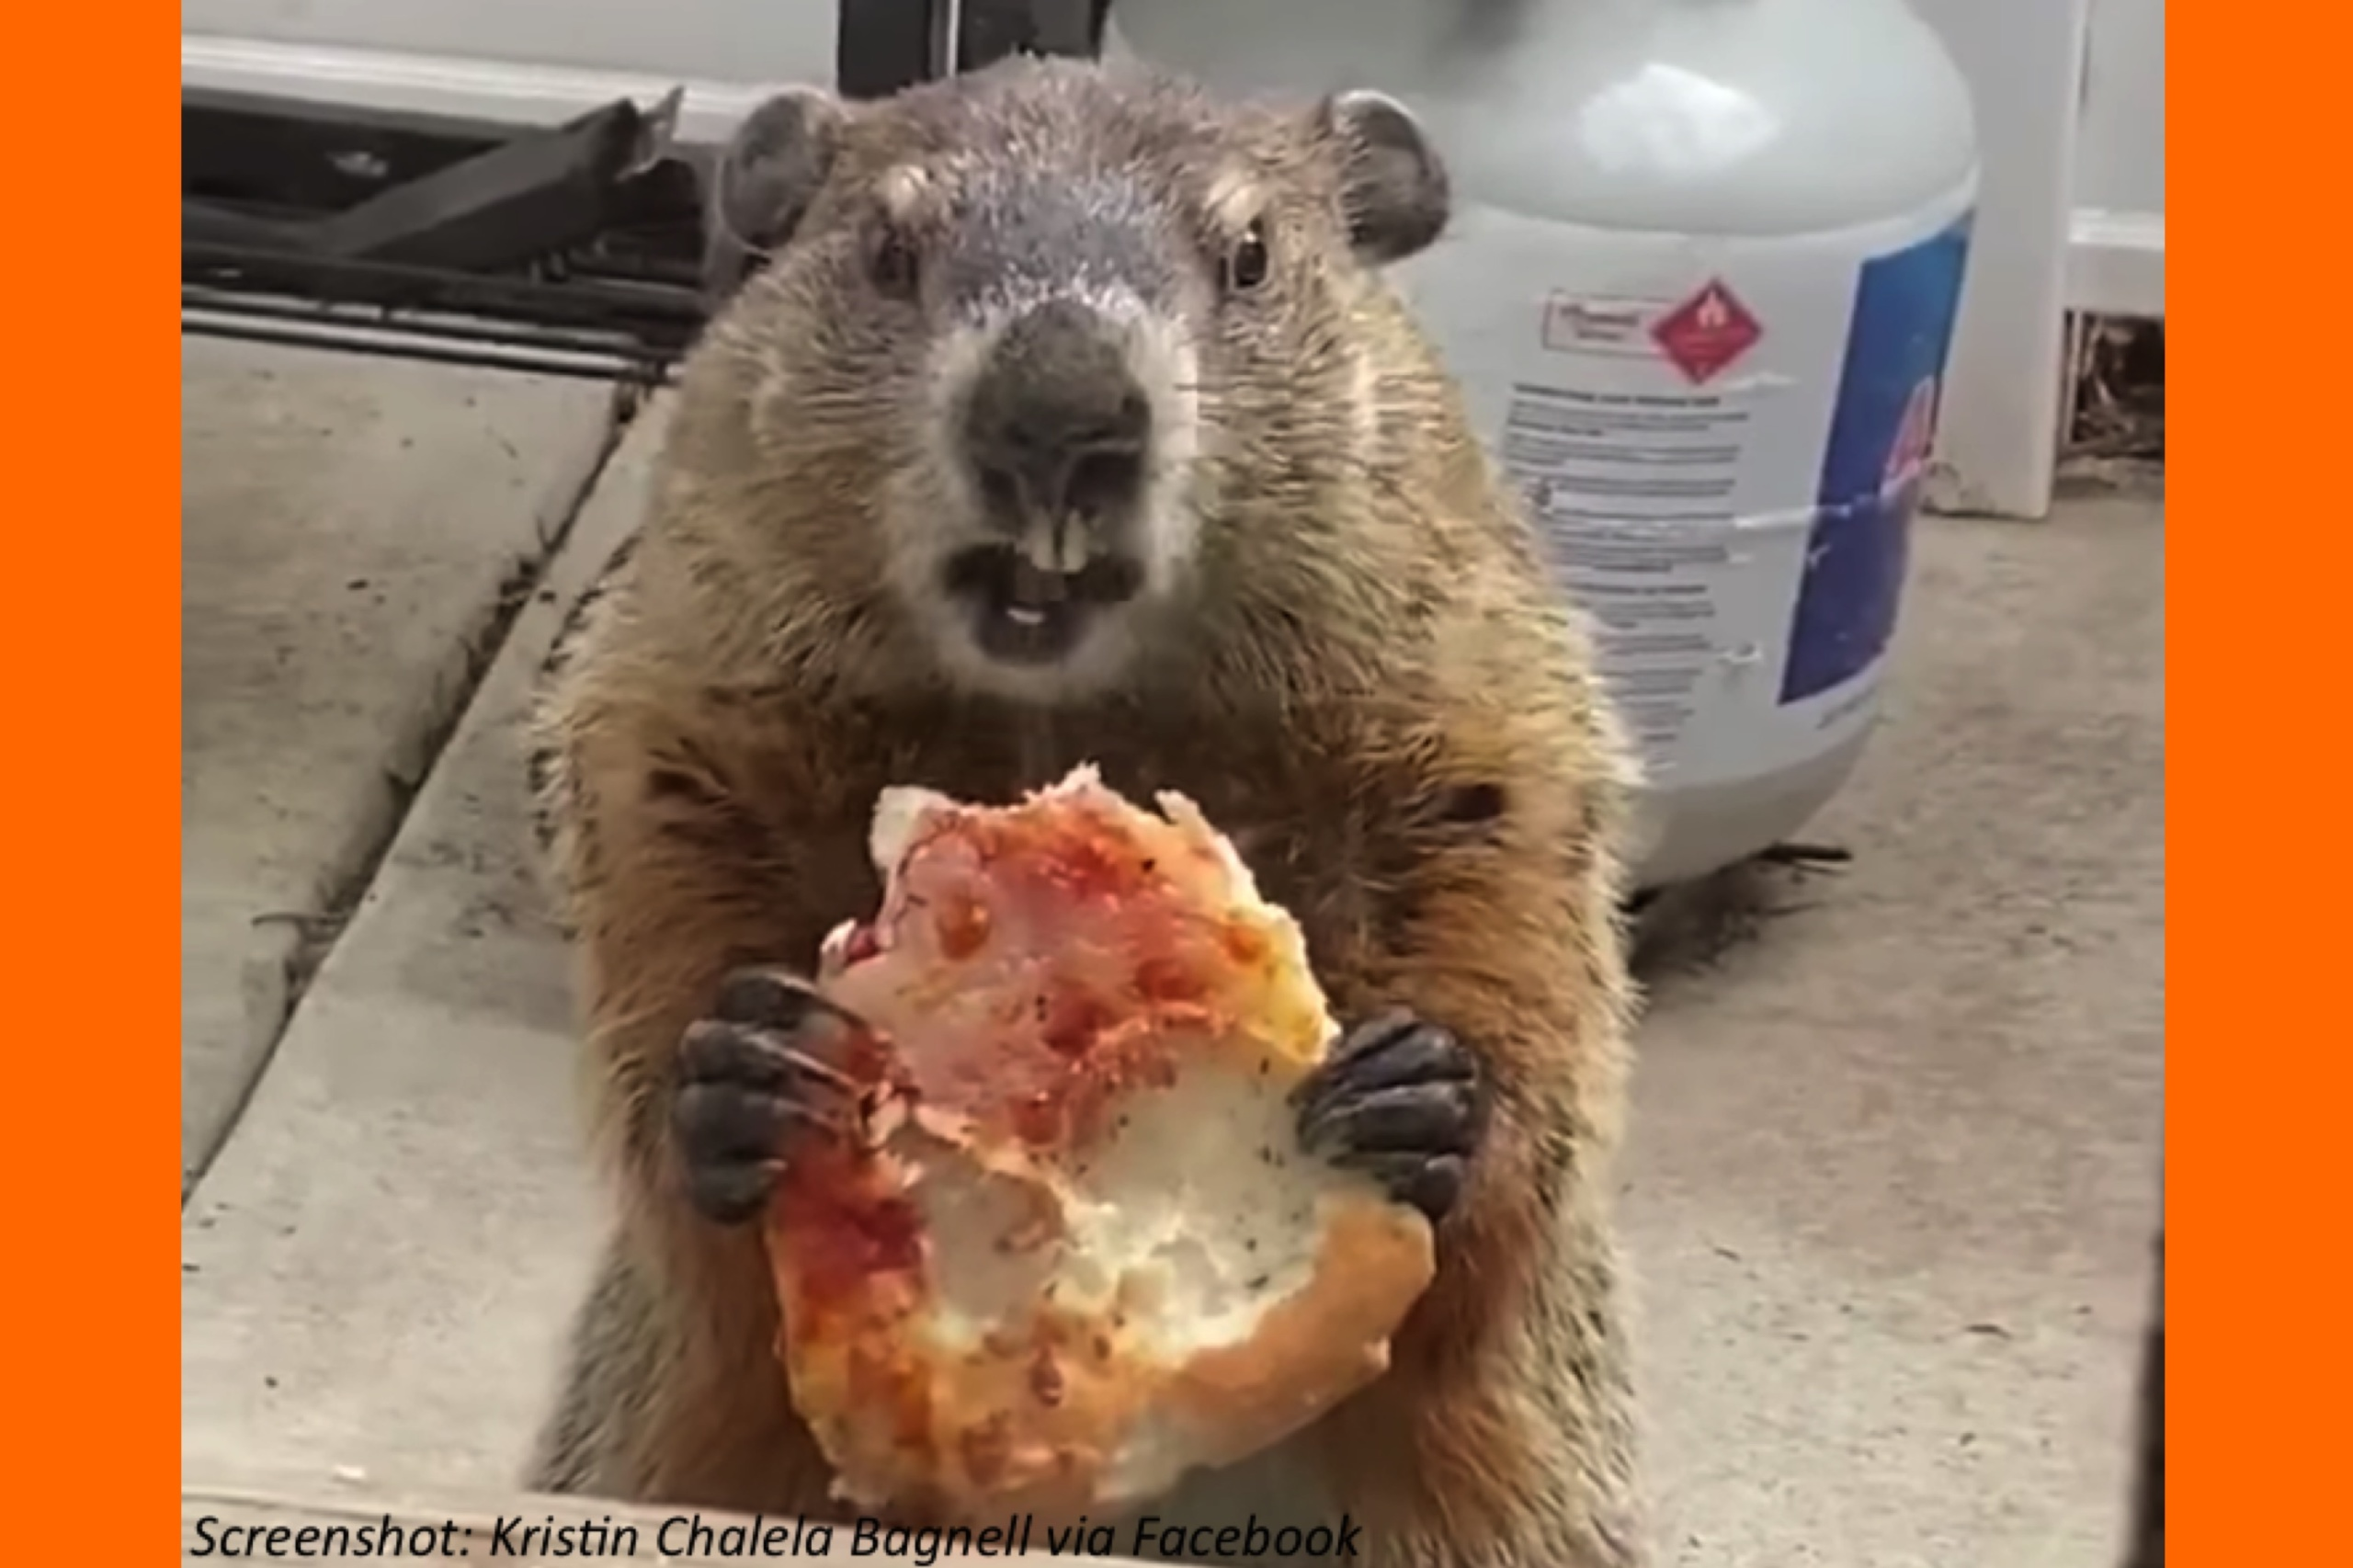 Hey! Quit Groundhogging the Pizza